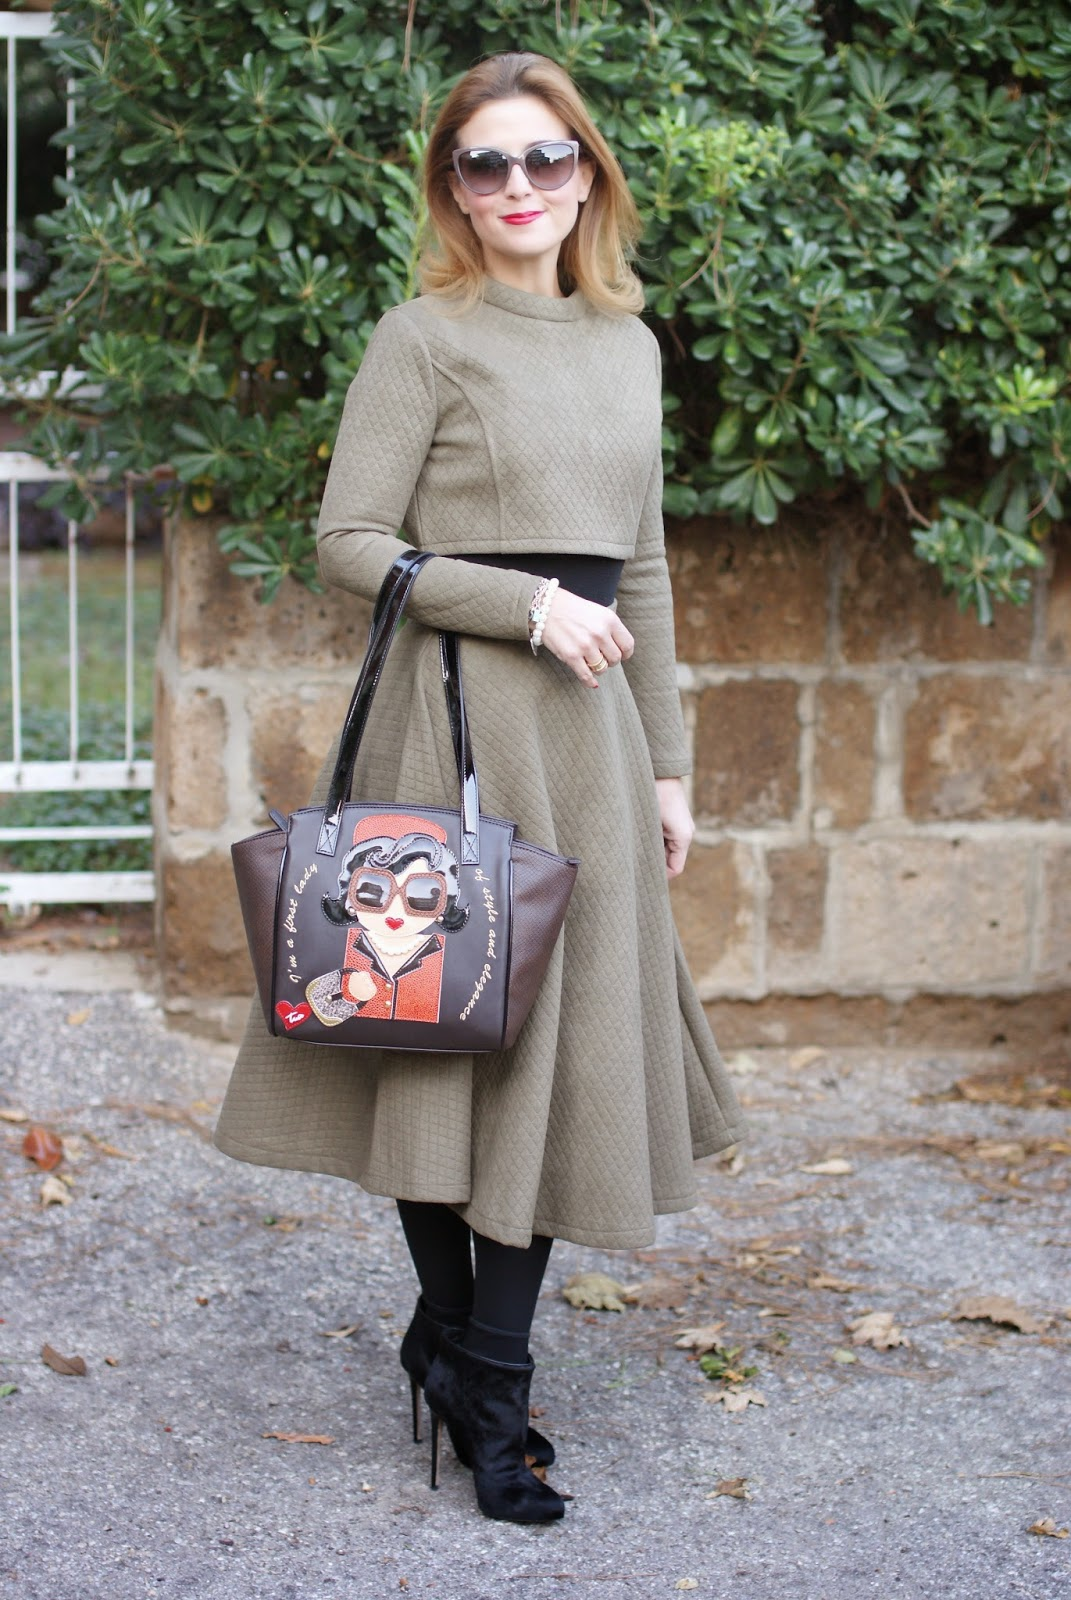 Quilted crop top and midi skirt, Braccialini Jackie Kennedy bag, Le Silla ankle boots, Fashion and Cookies, fashion blogger